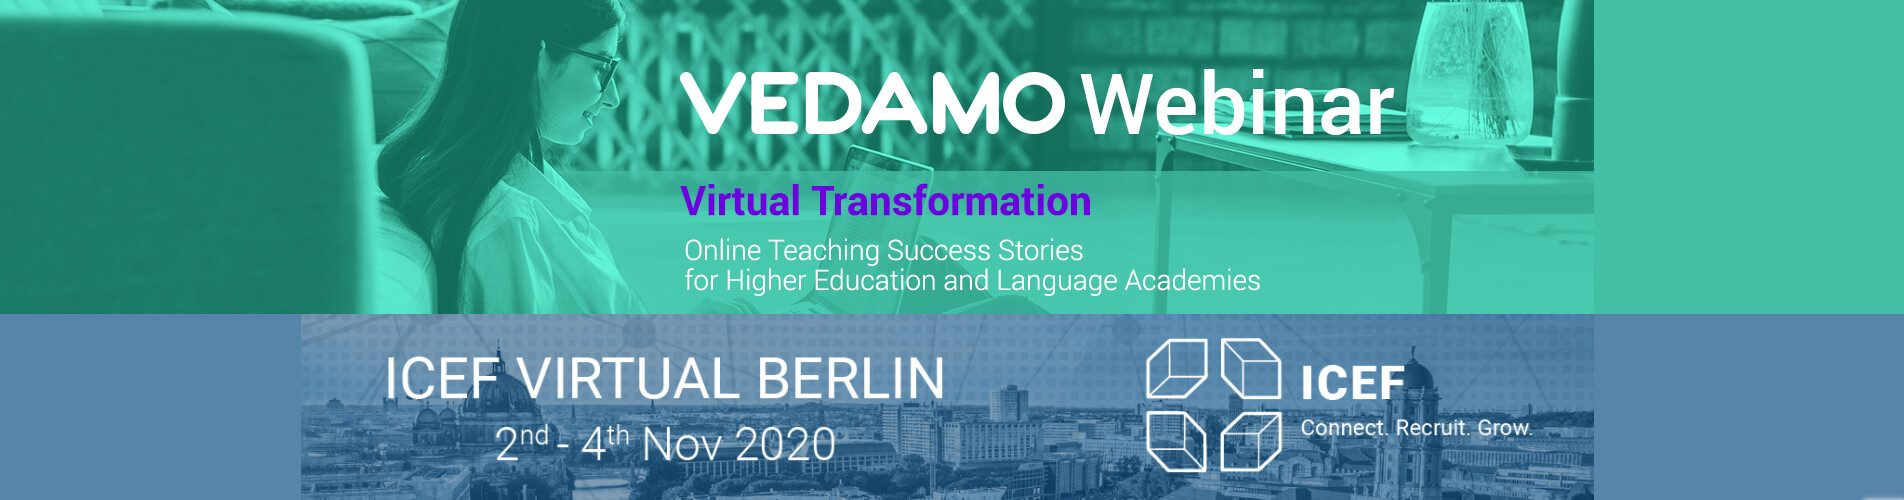 Virtual transformation in education